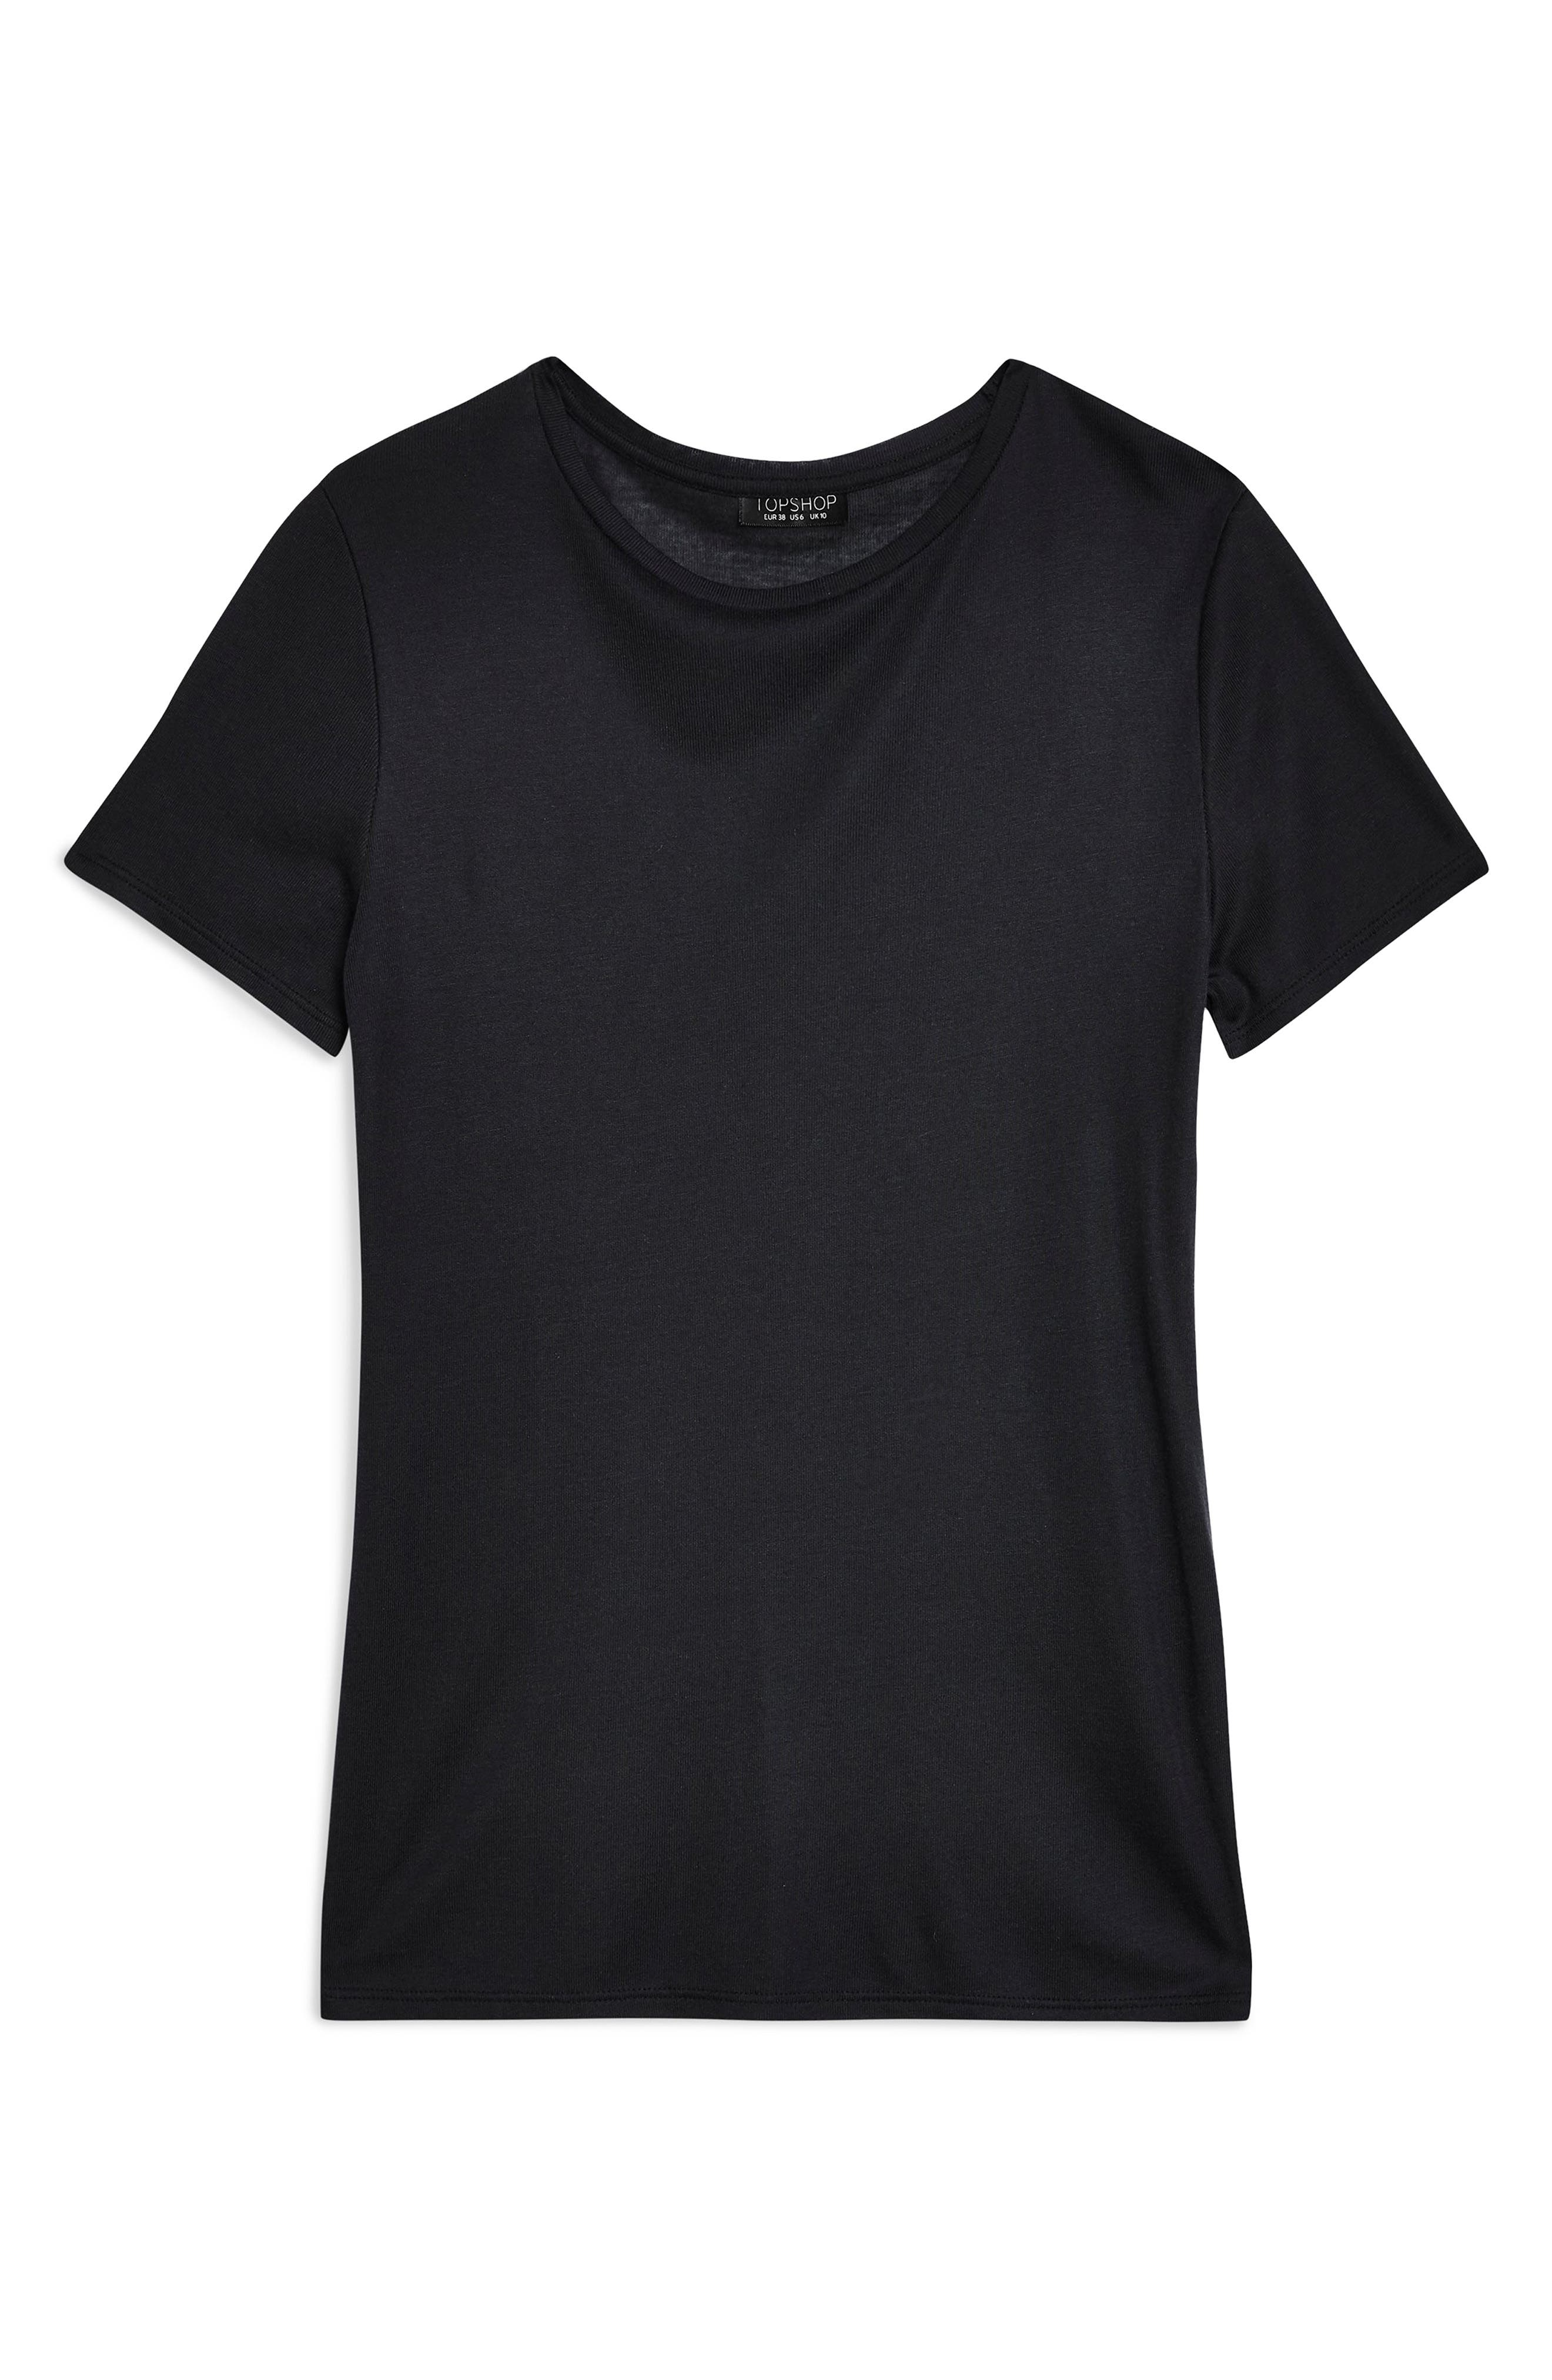 Premium Clean Tee,                             Alternate thumbnail 3, color,                             BLACK